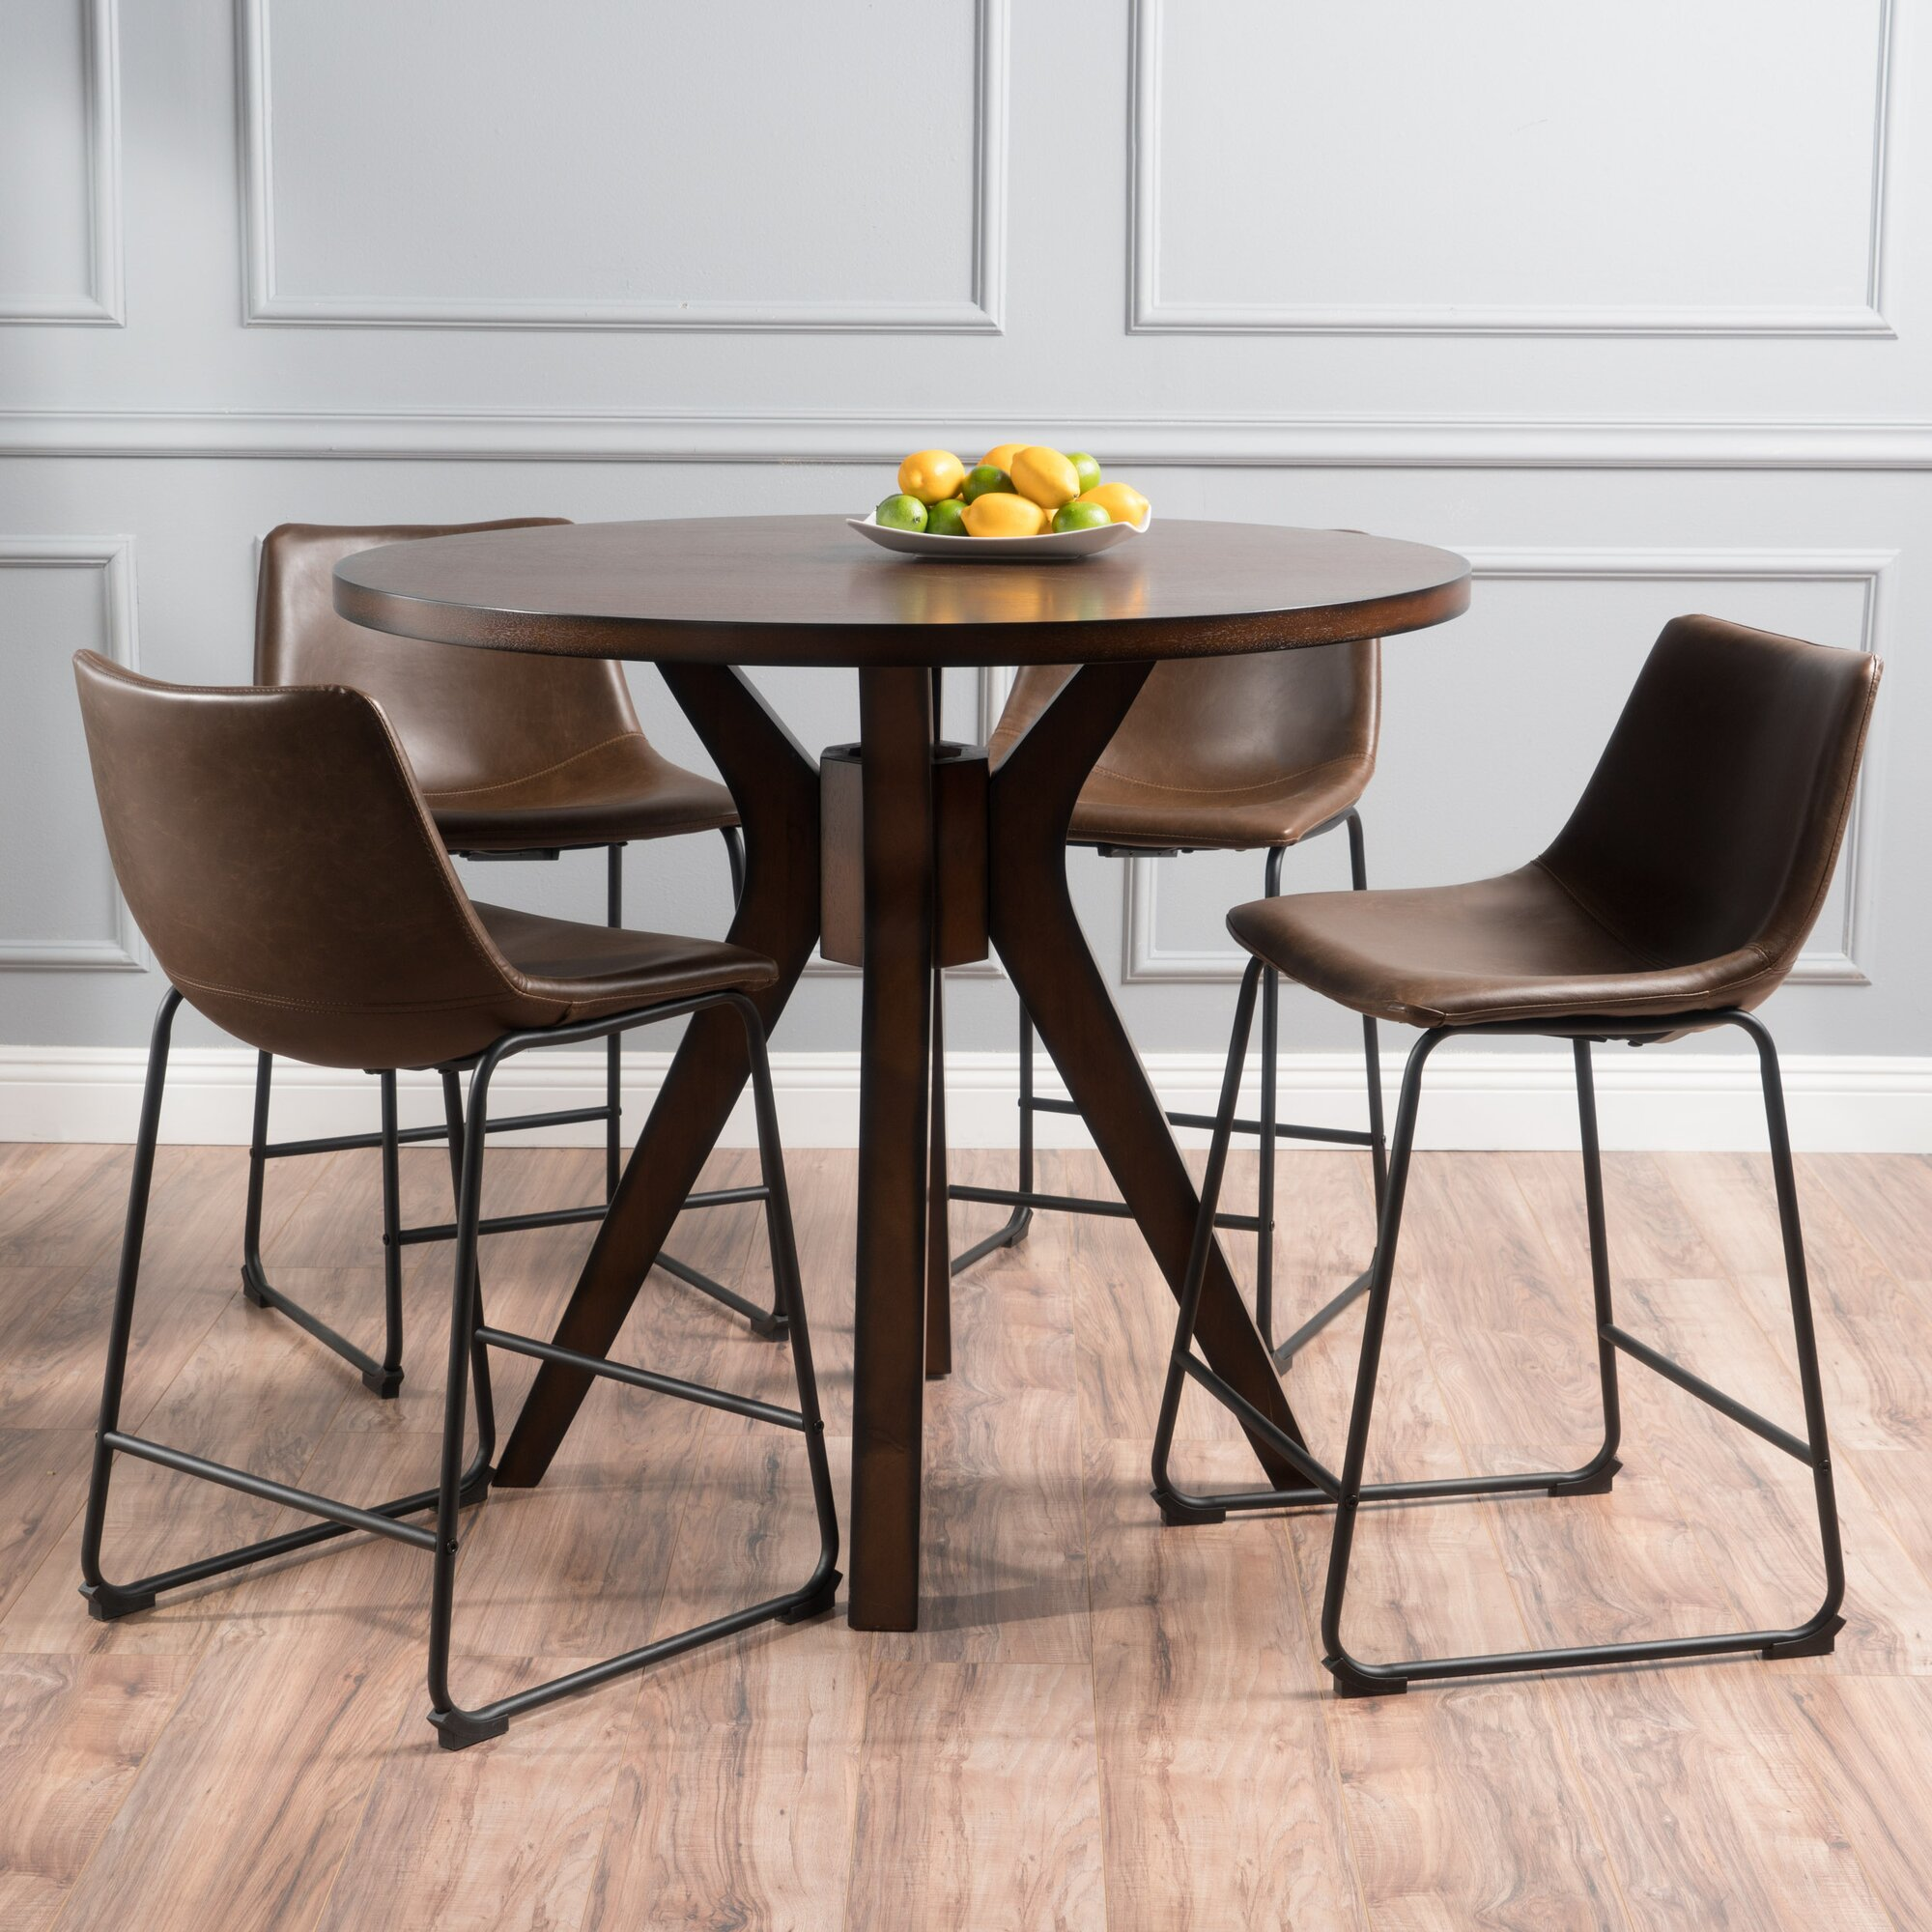 Dining Set Round: Maclin Faux Wood Round 5 Piece Dining Set